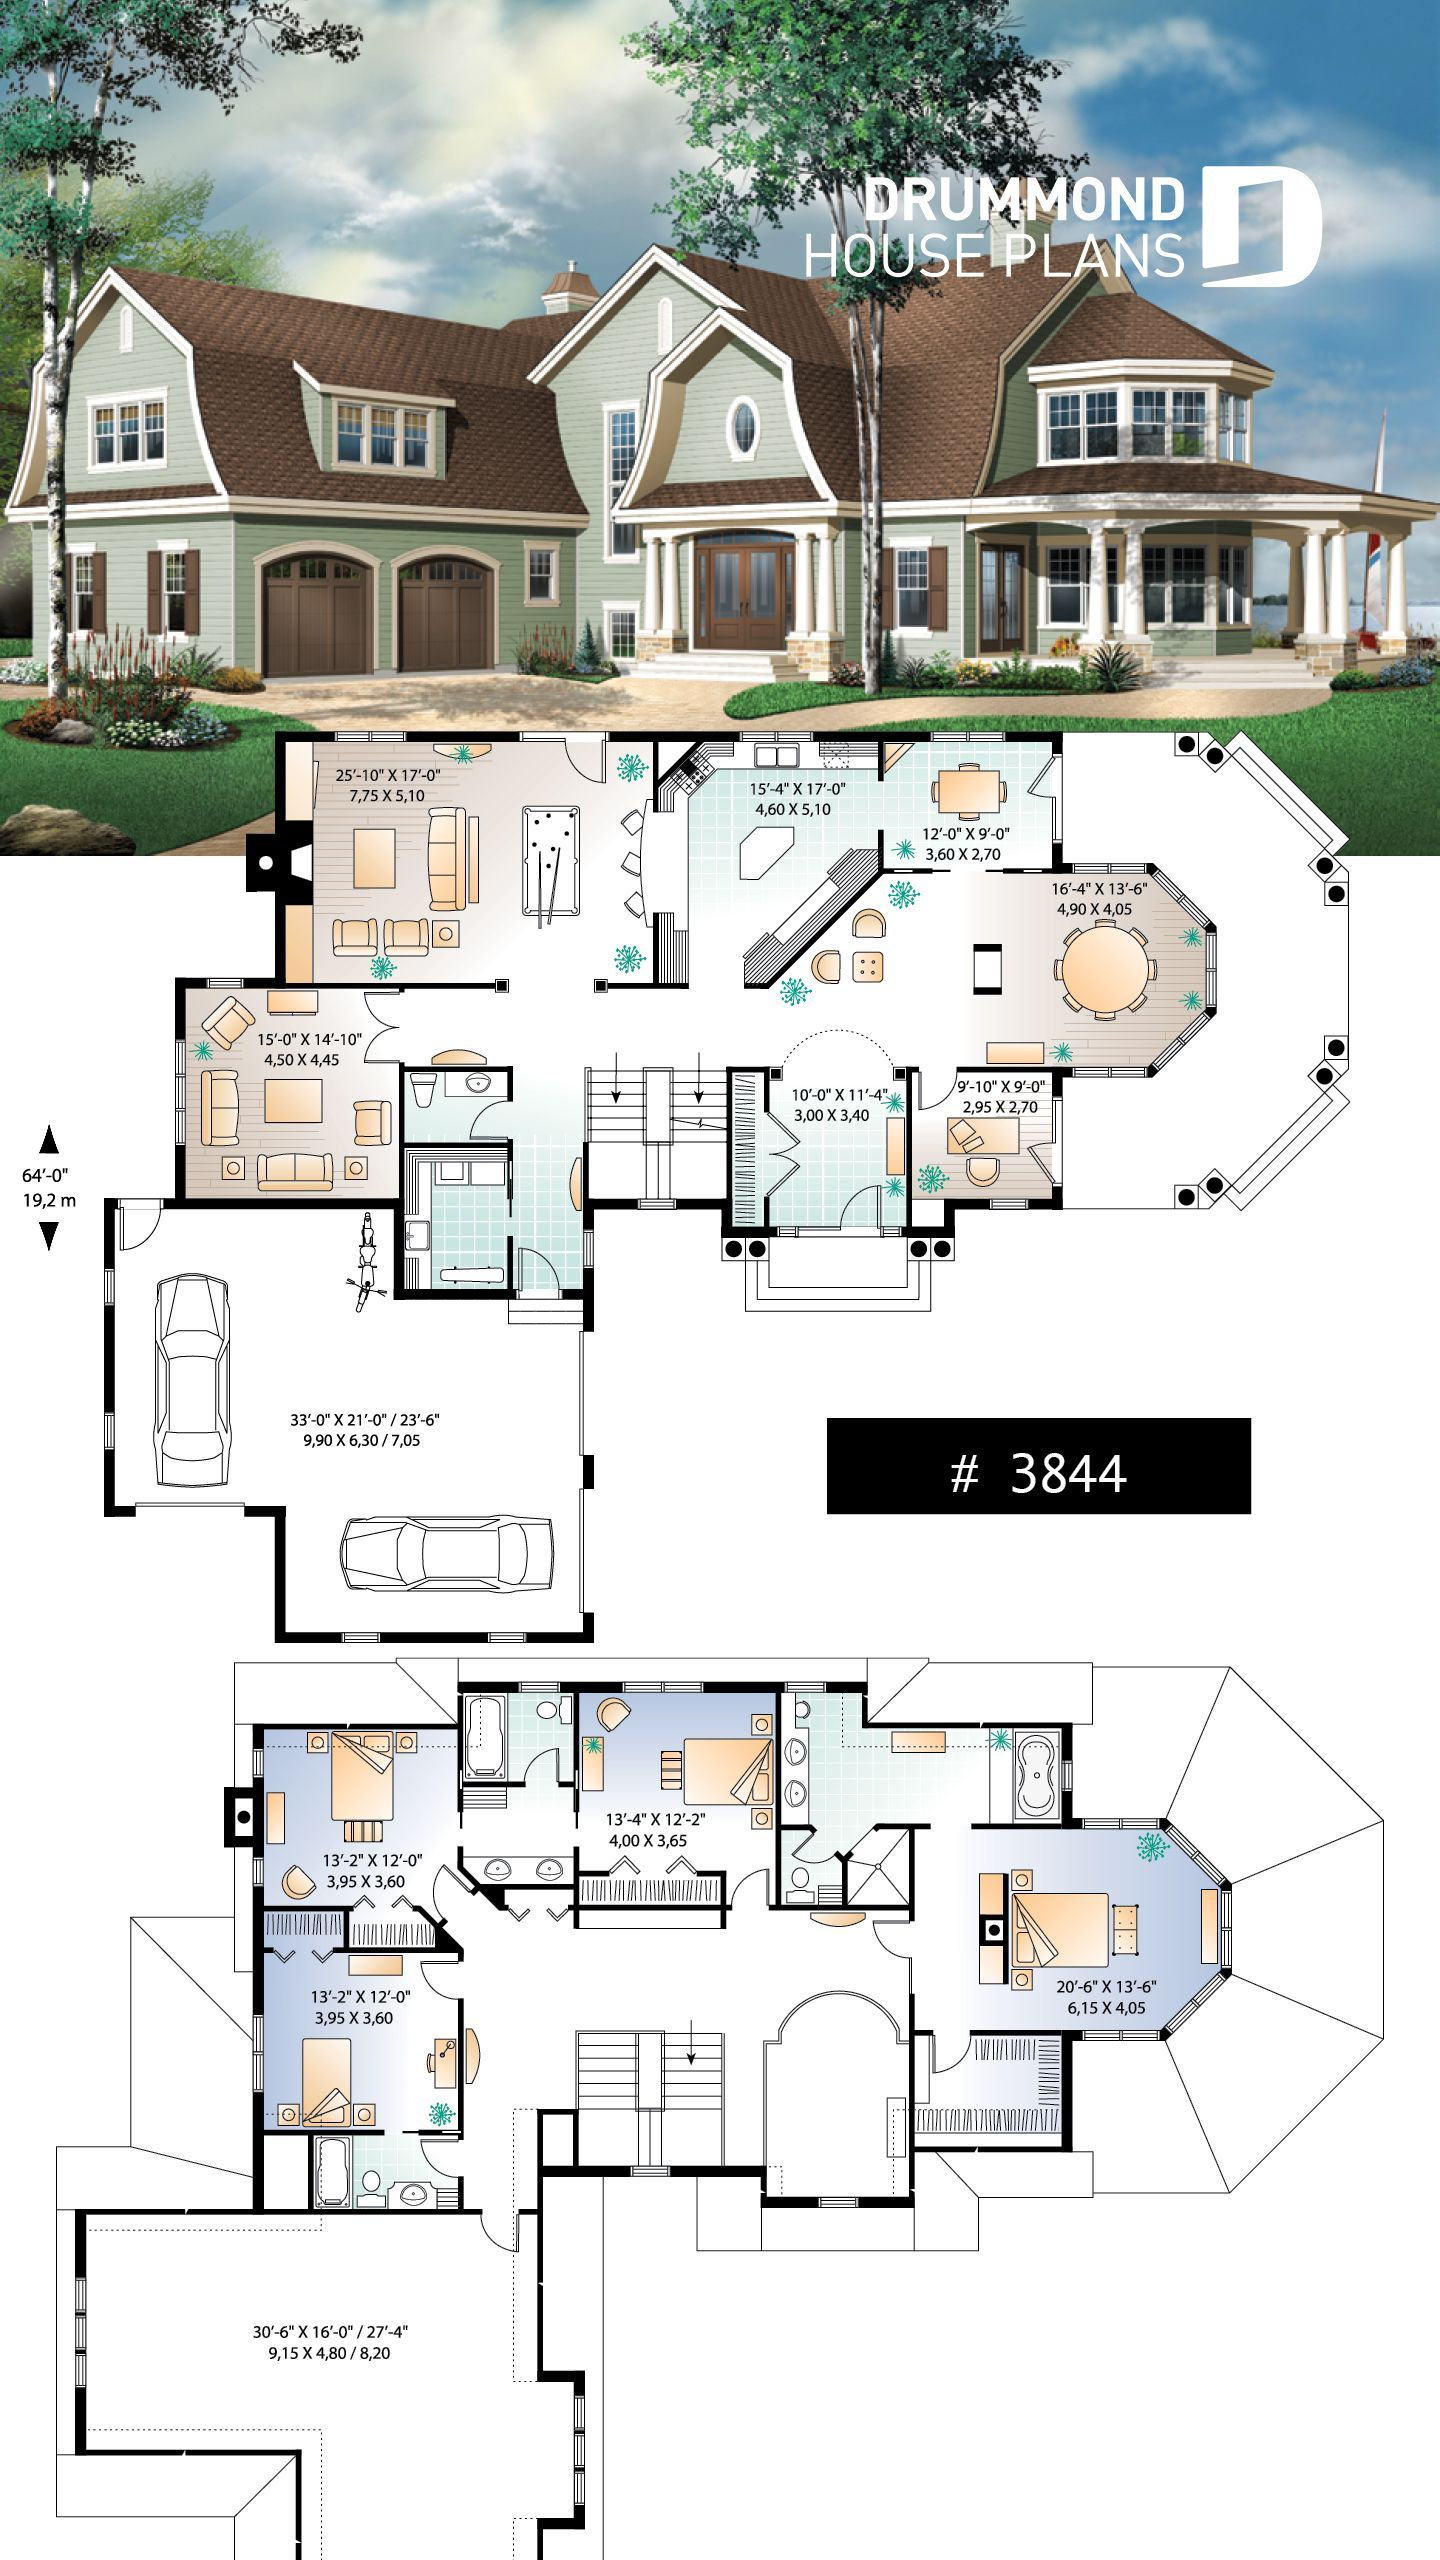 Lakefront Hampton Style Home Plan House Plans Drummond House Plans Sims House Design